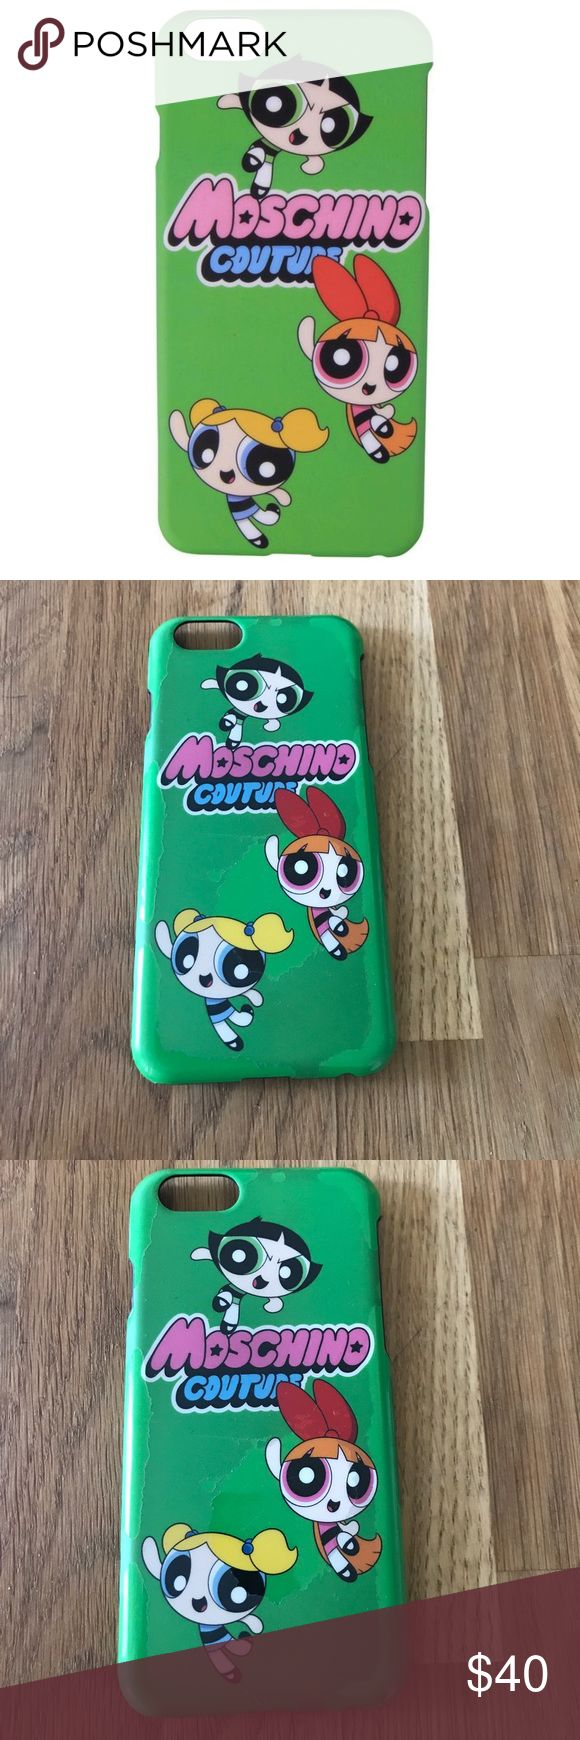 Moschino Power Puff Girls iPhone 6 case A little worn, the top layer is chipping off but the underneath is still gorgeous!  A total collectors item, these sold out everywhere! Moschino Accessories Phone Cases